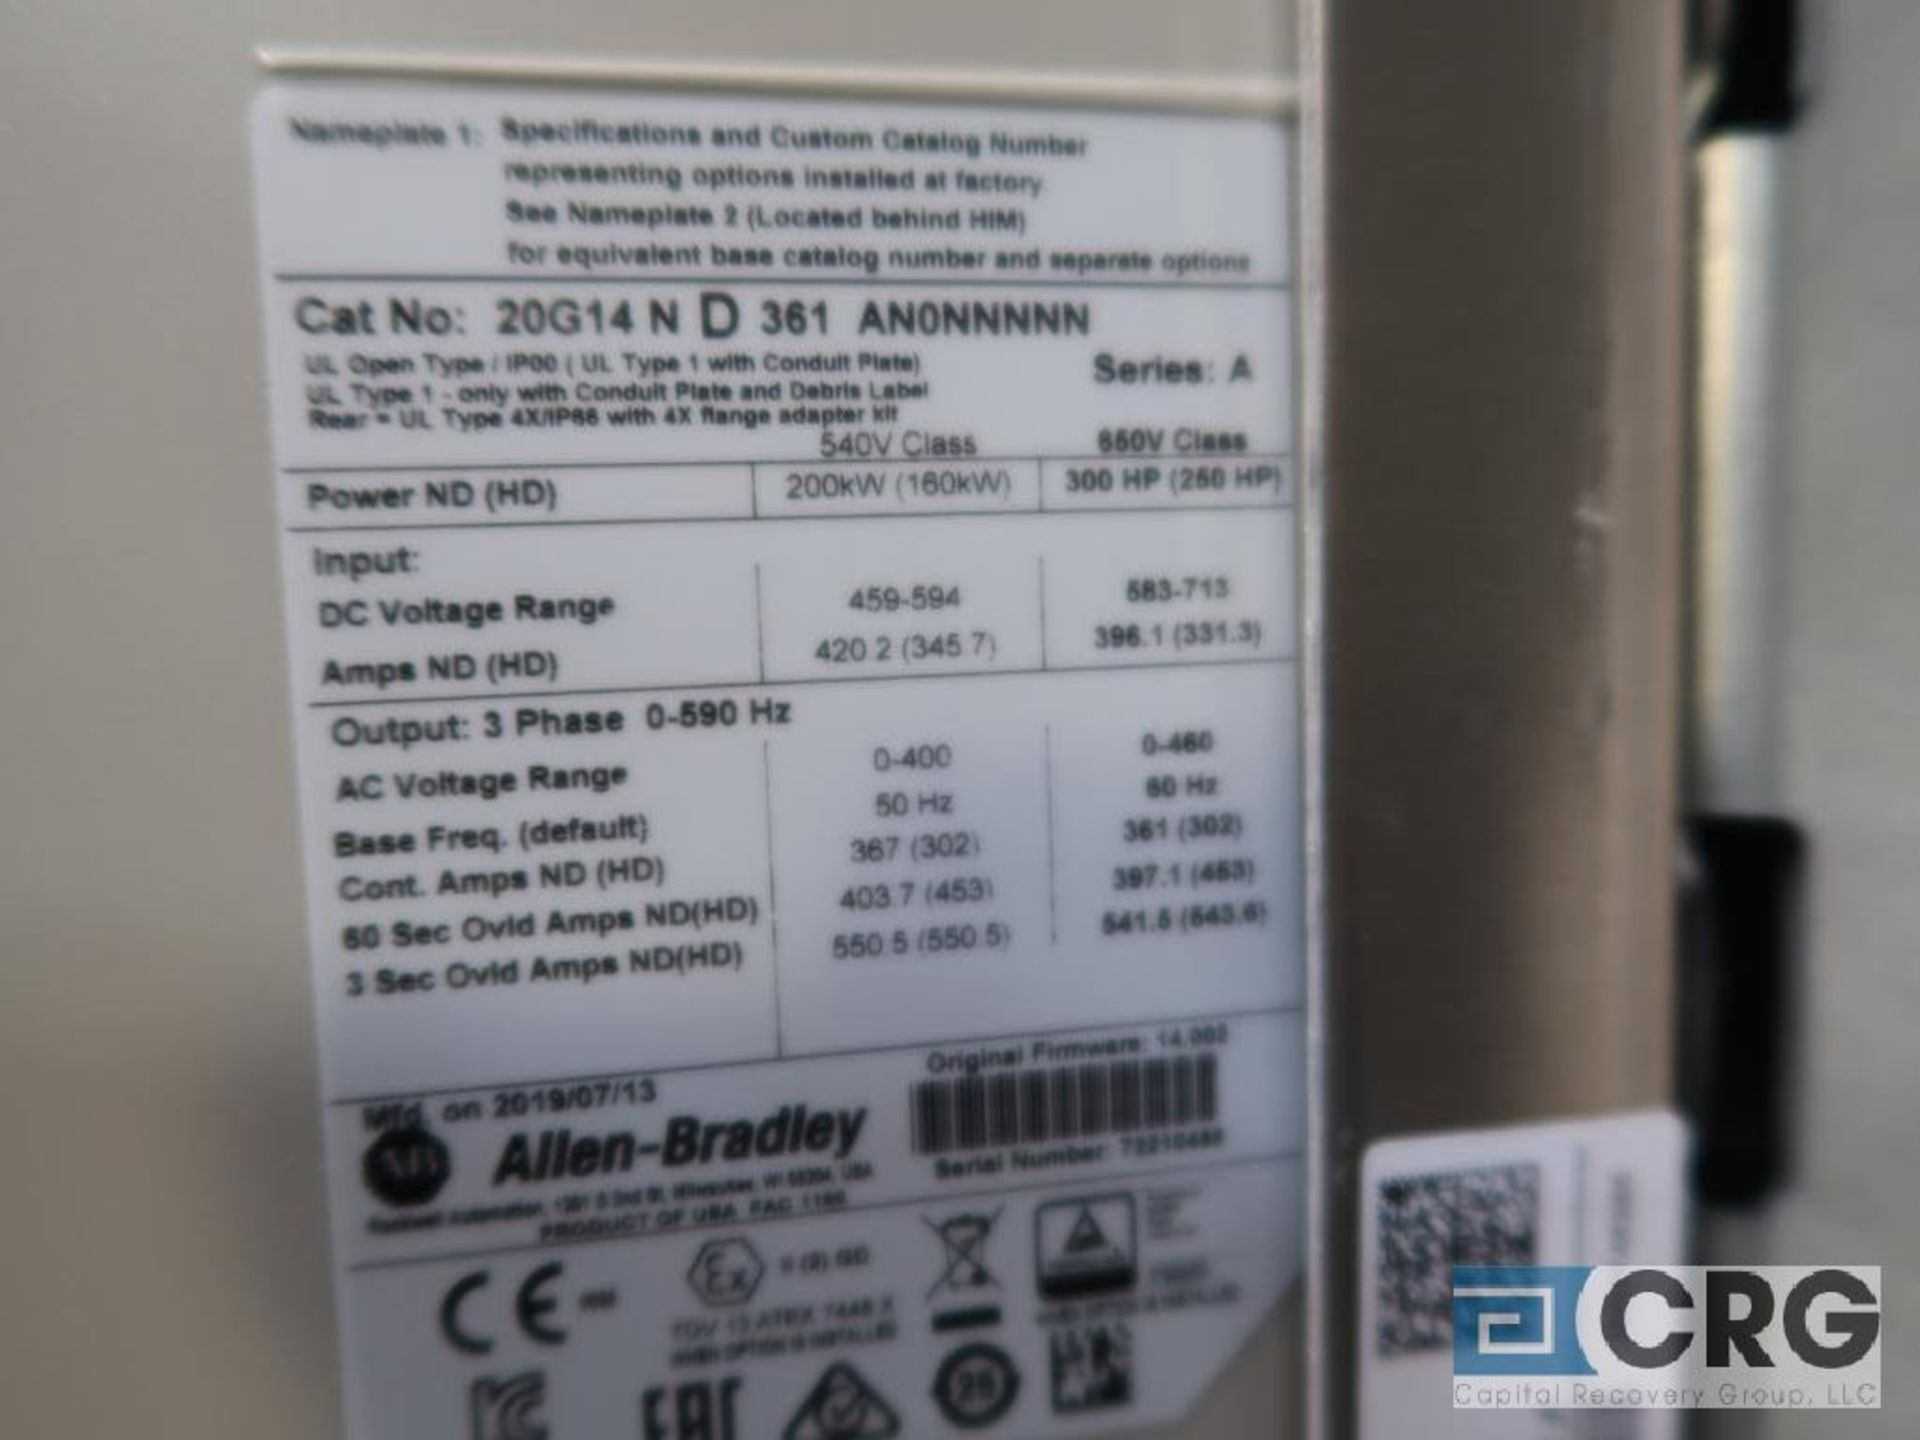 Allen Bradley Power Flex 755 300 HP variable frequency drive, 480 volt, s/n 7221 04984 (Finish - Image 2 of 2